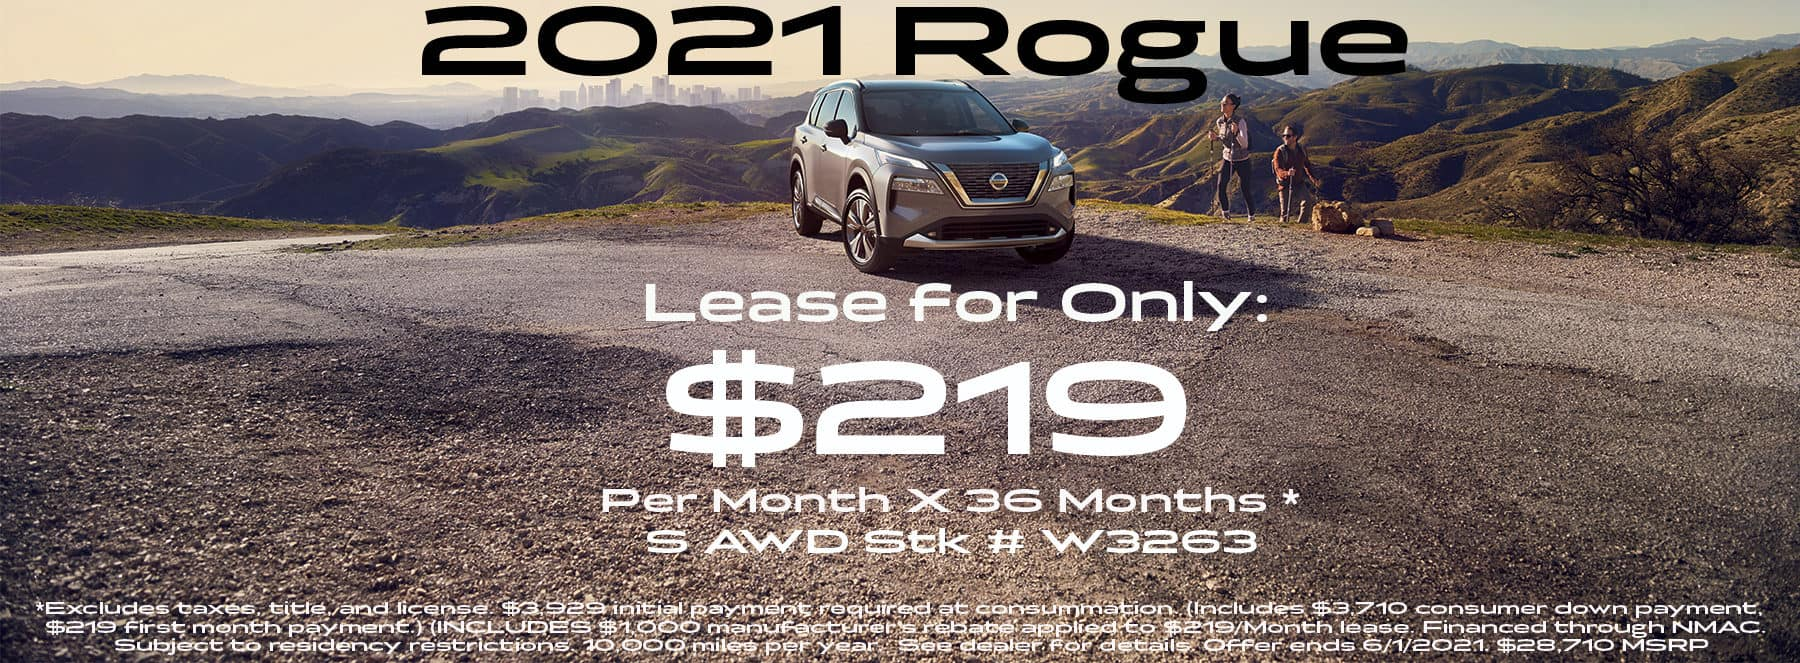 Rogue21lease